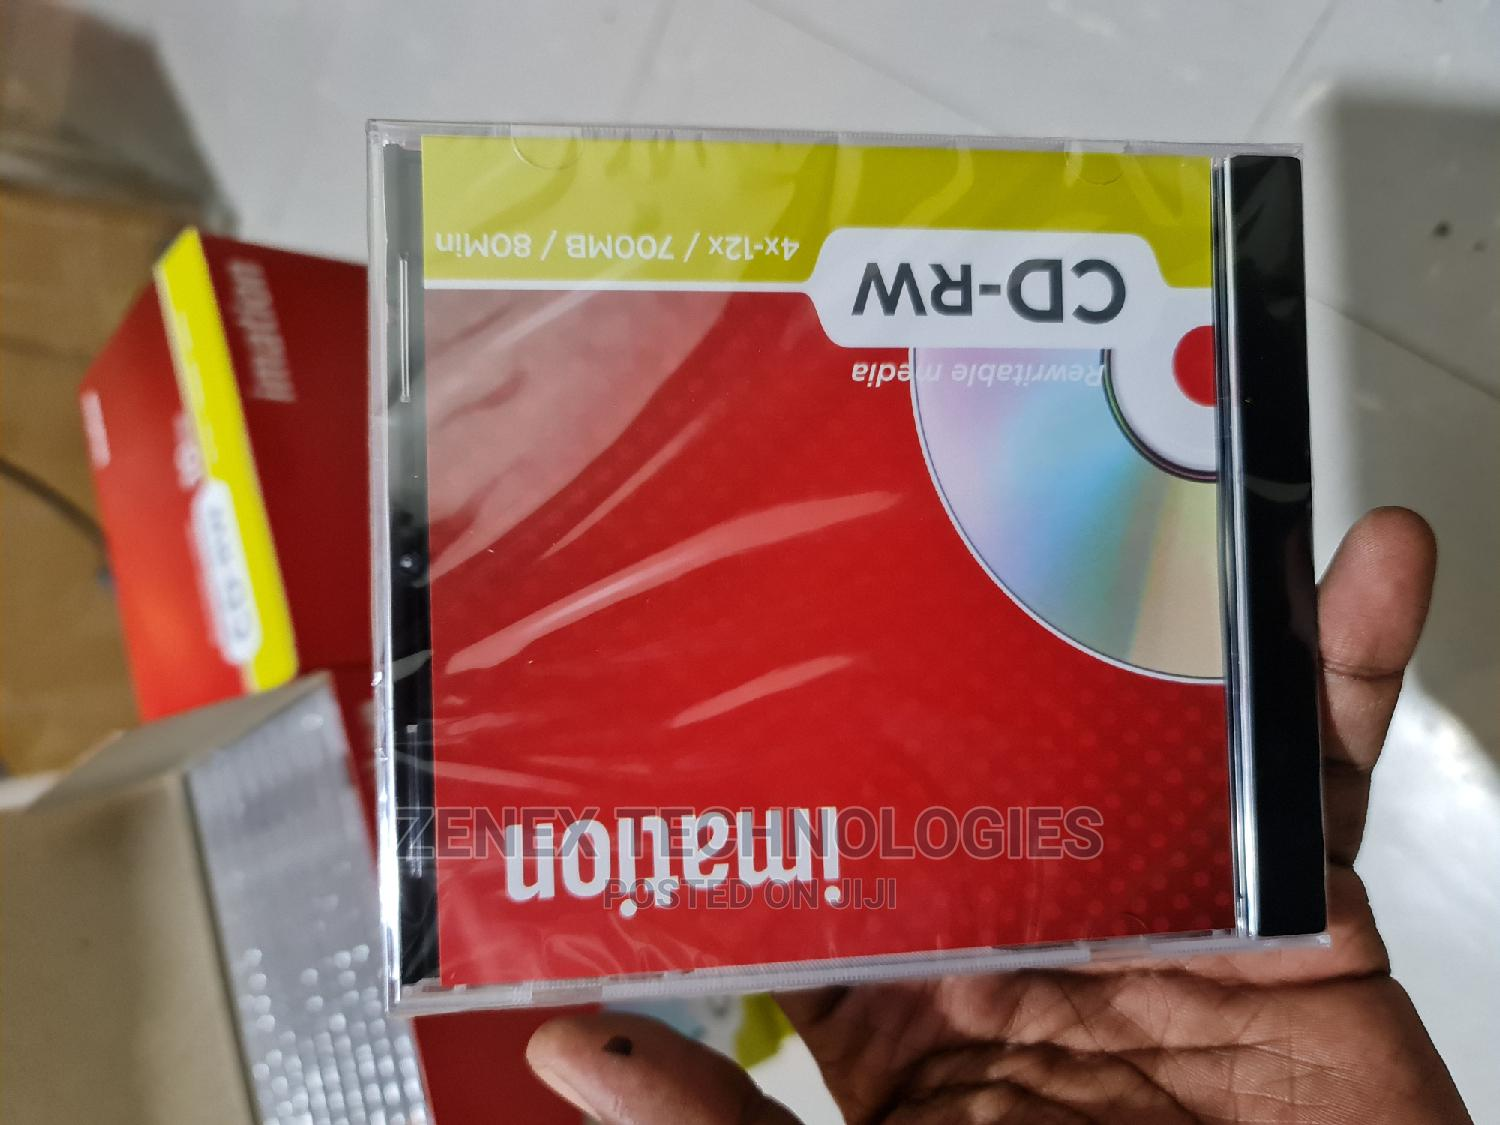 Blank CD RW Rewritable Portable Media | CDs & DVDs for sale in Nairobi Central, Nairobi, Kenya